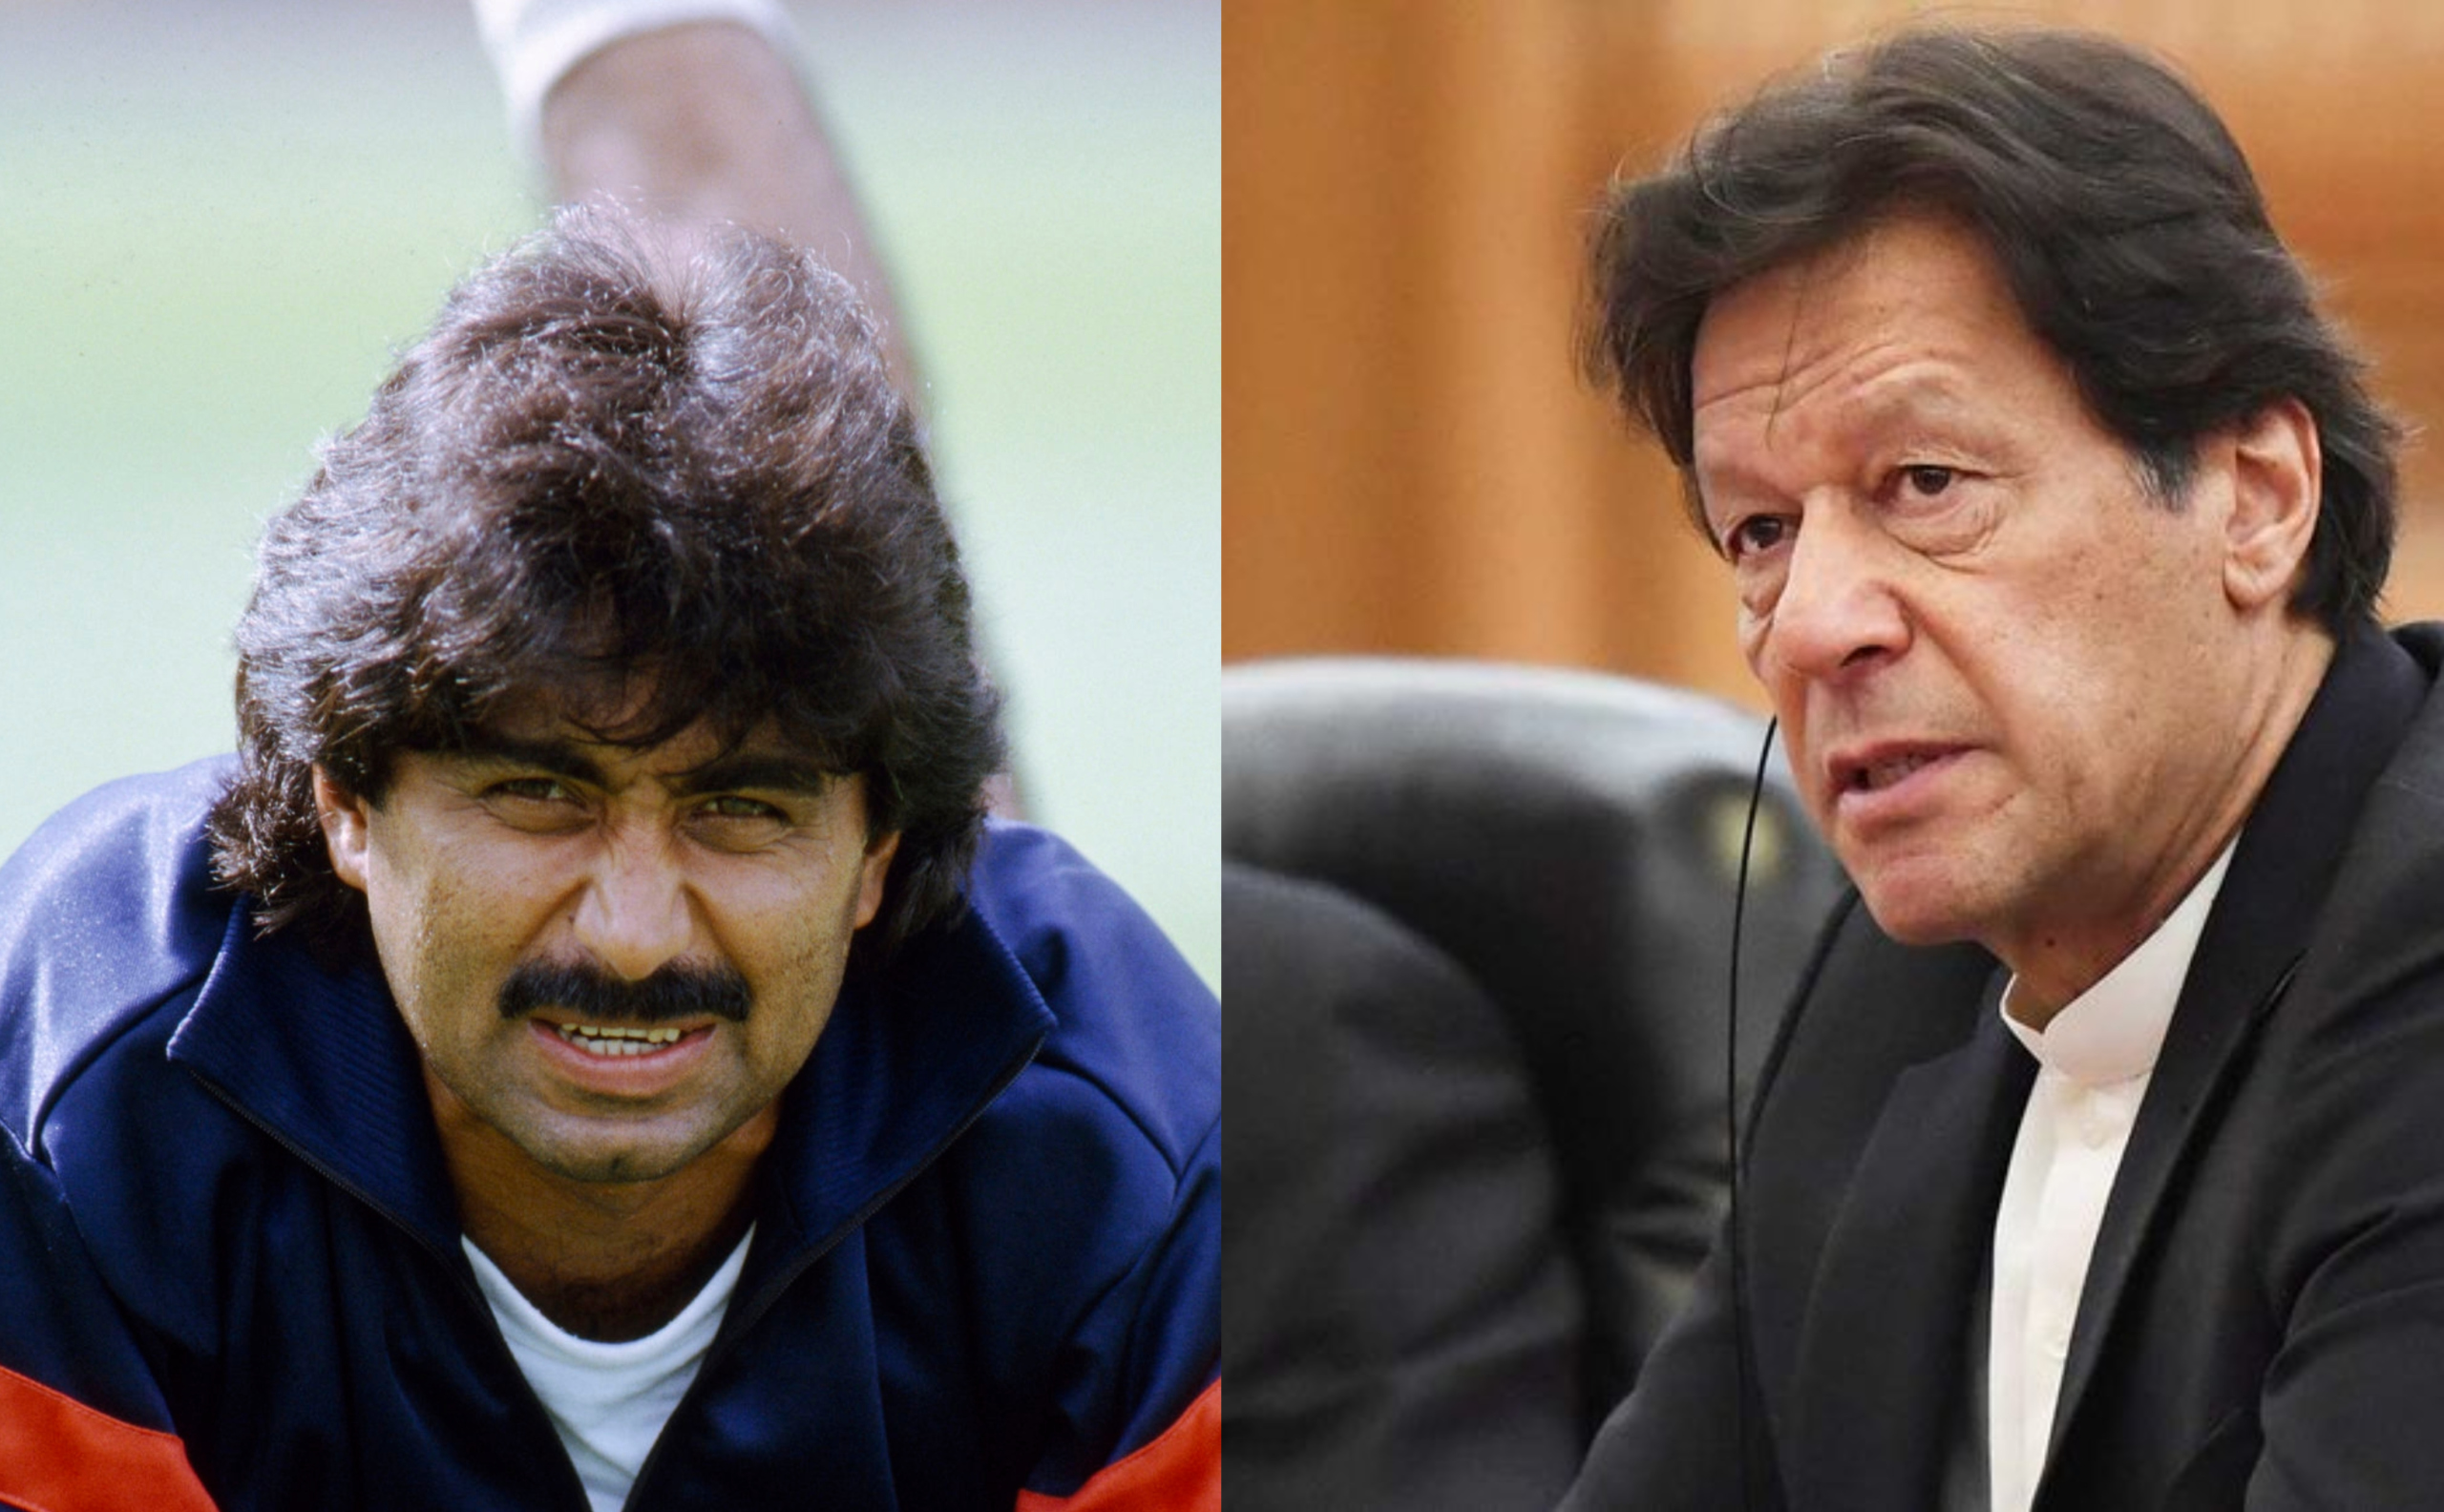 Javed Miandad apologizes for his words on Imran Khan